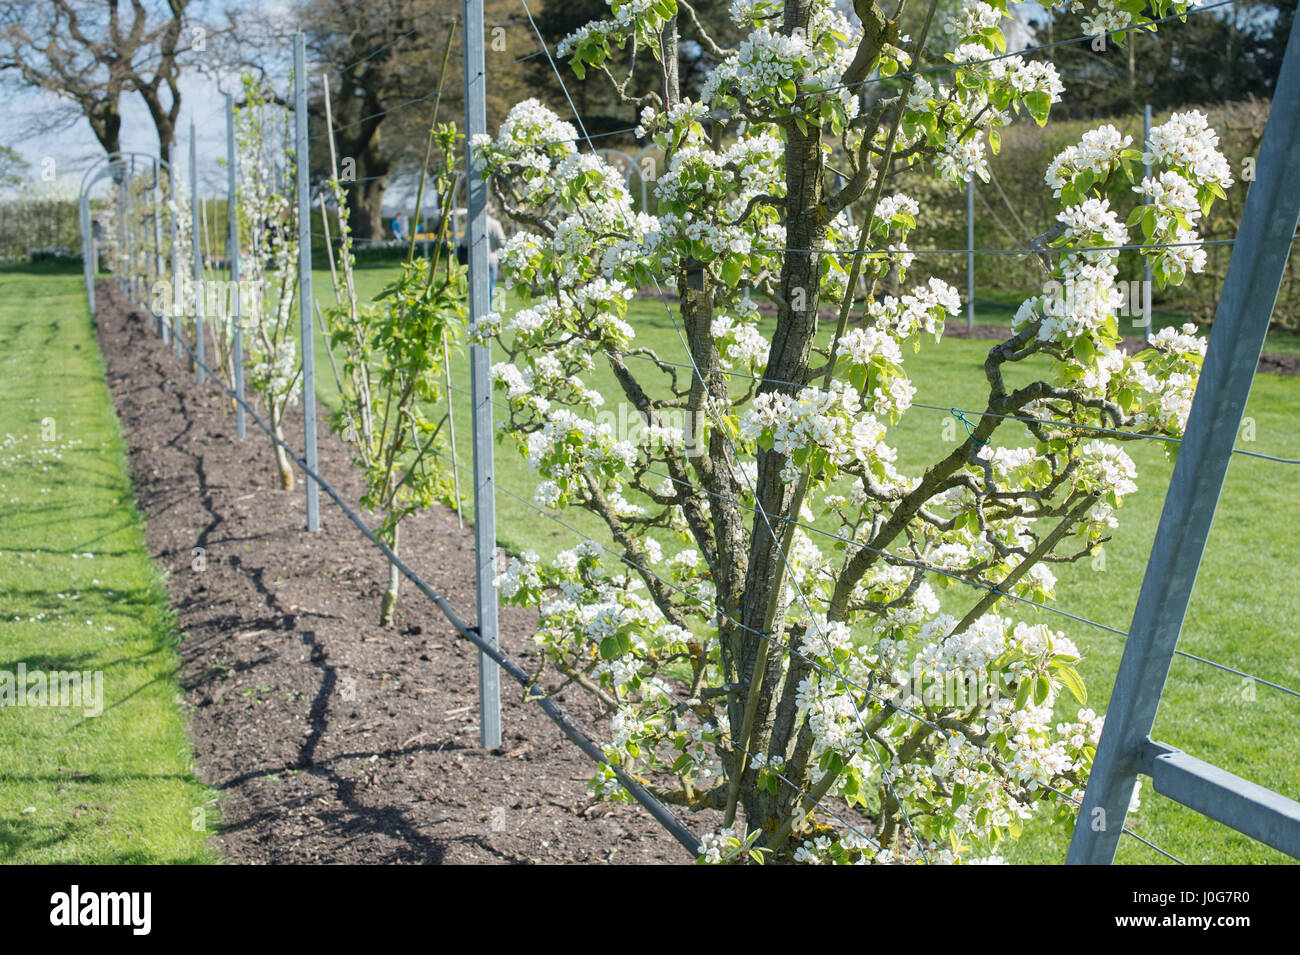 espaliered tree stockfotos espaliered tree bilder alamy. Black Bedroom Furniture Sets. Home Design Ideas